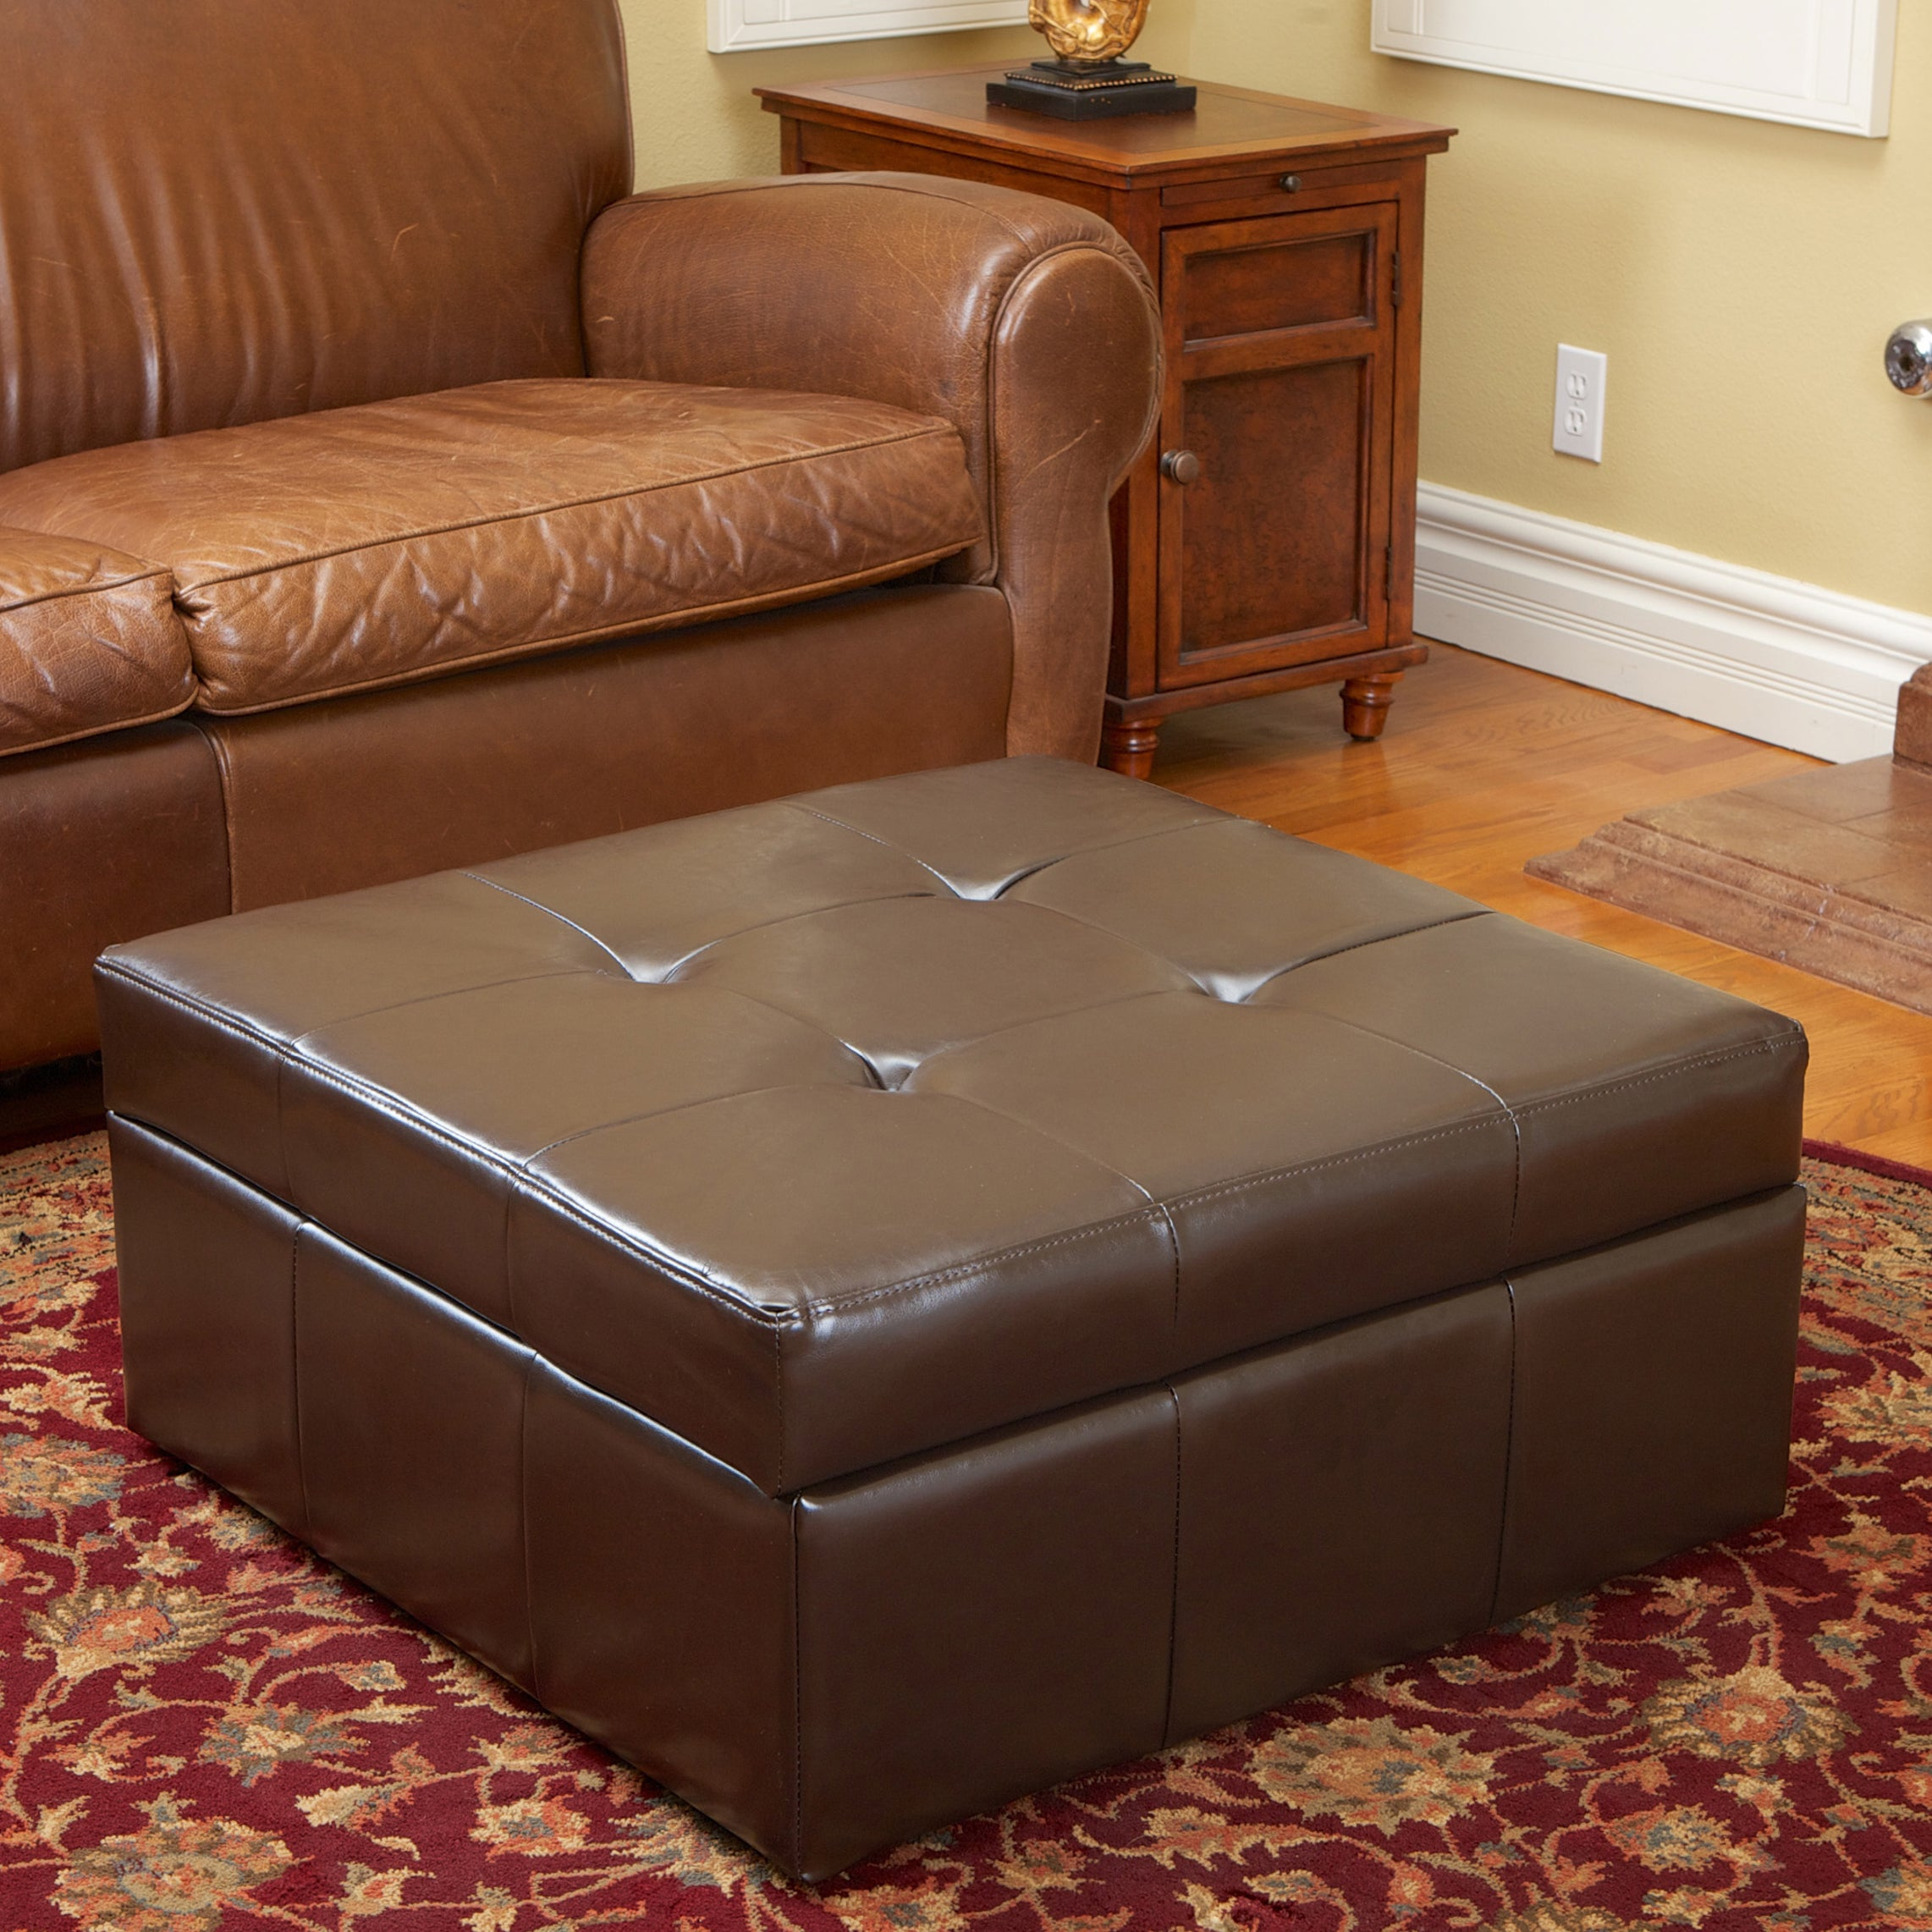 Superior Shop Chatsworth Brown Leather Storage Ottoman By Christopher Knight Home    On Sale   Free Shipping Today   Overstock.com   7539155